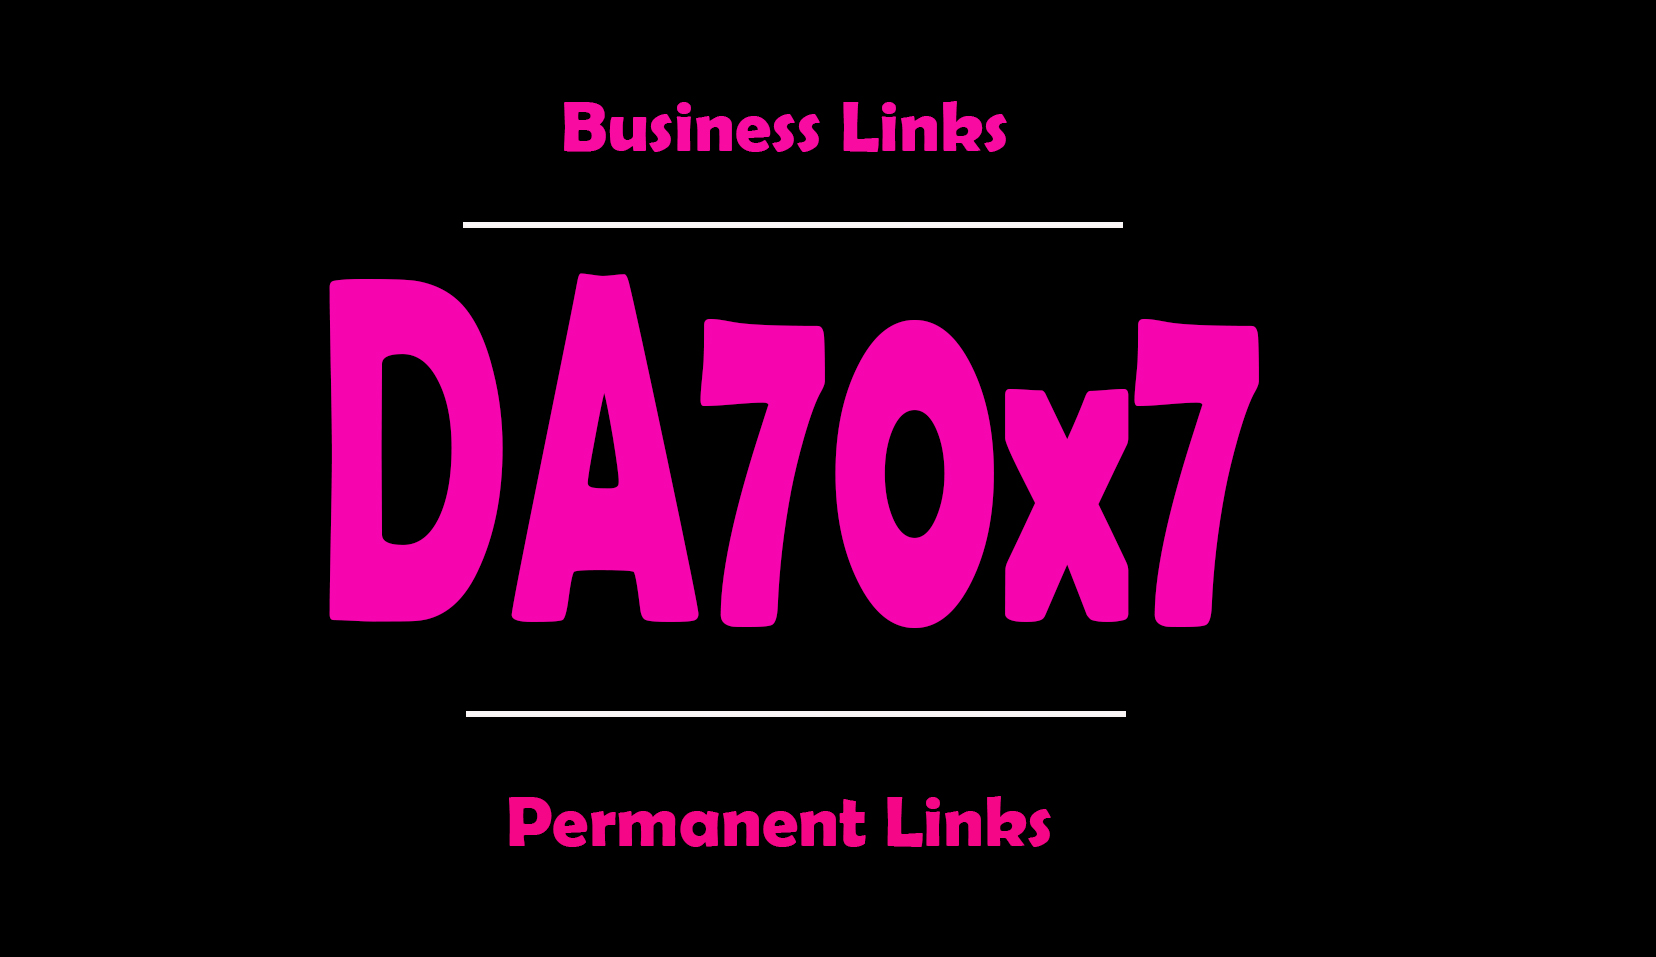 give backlinks DA70x7 business site blogroll permanent